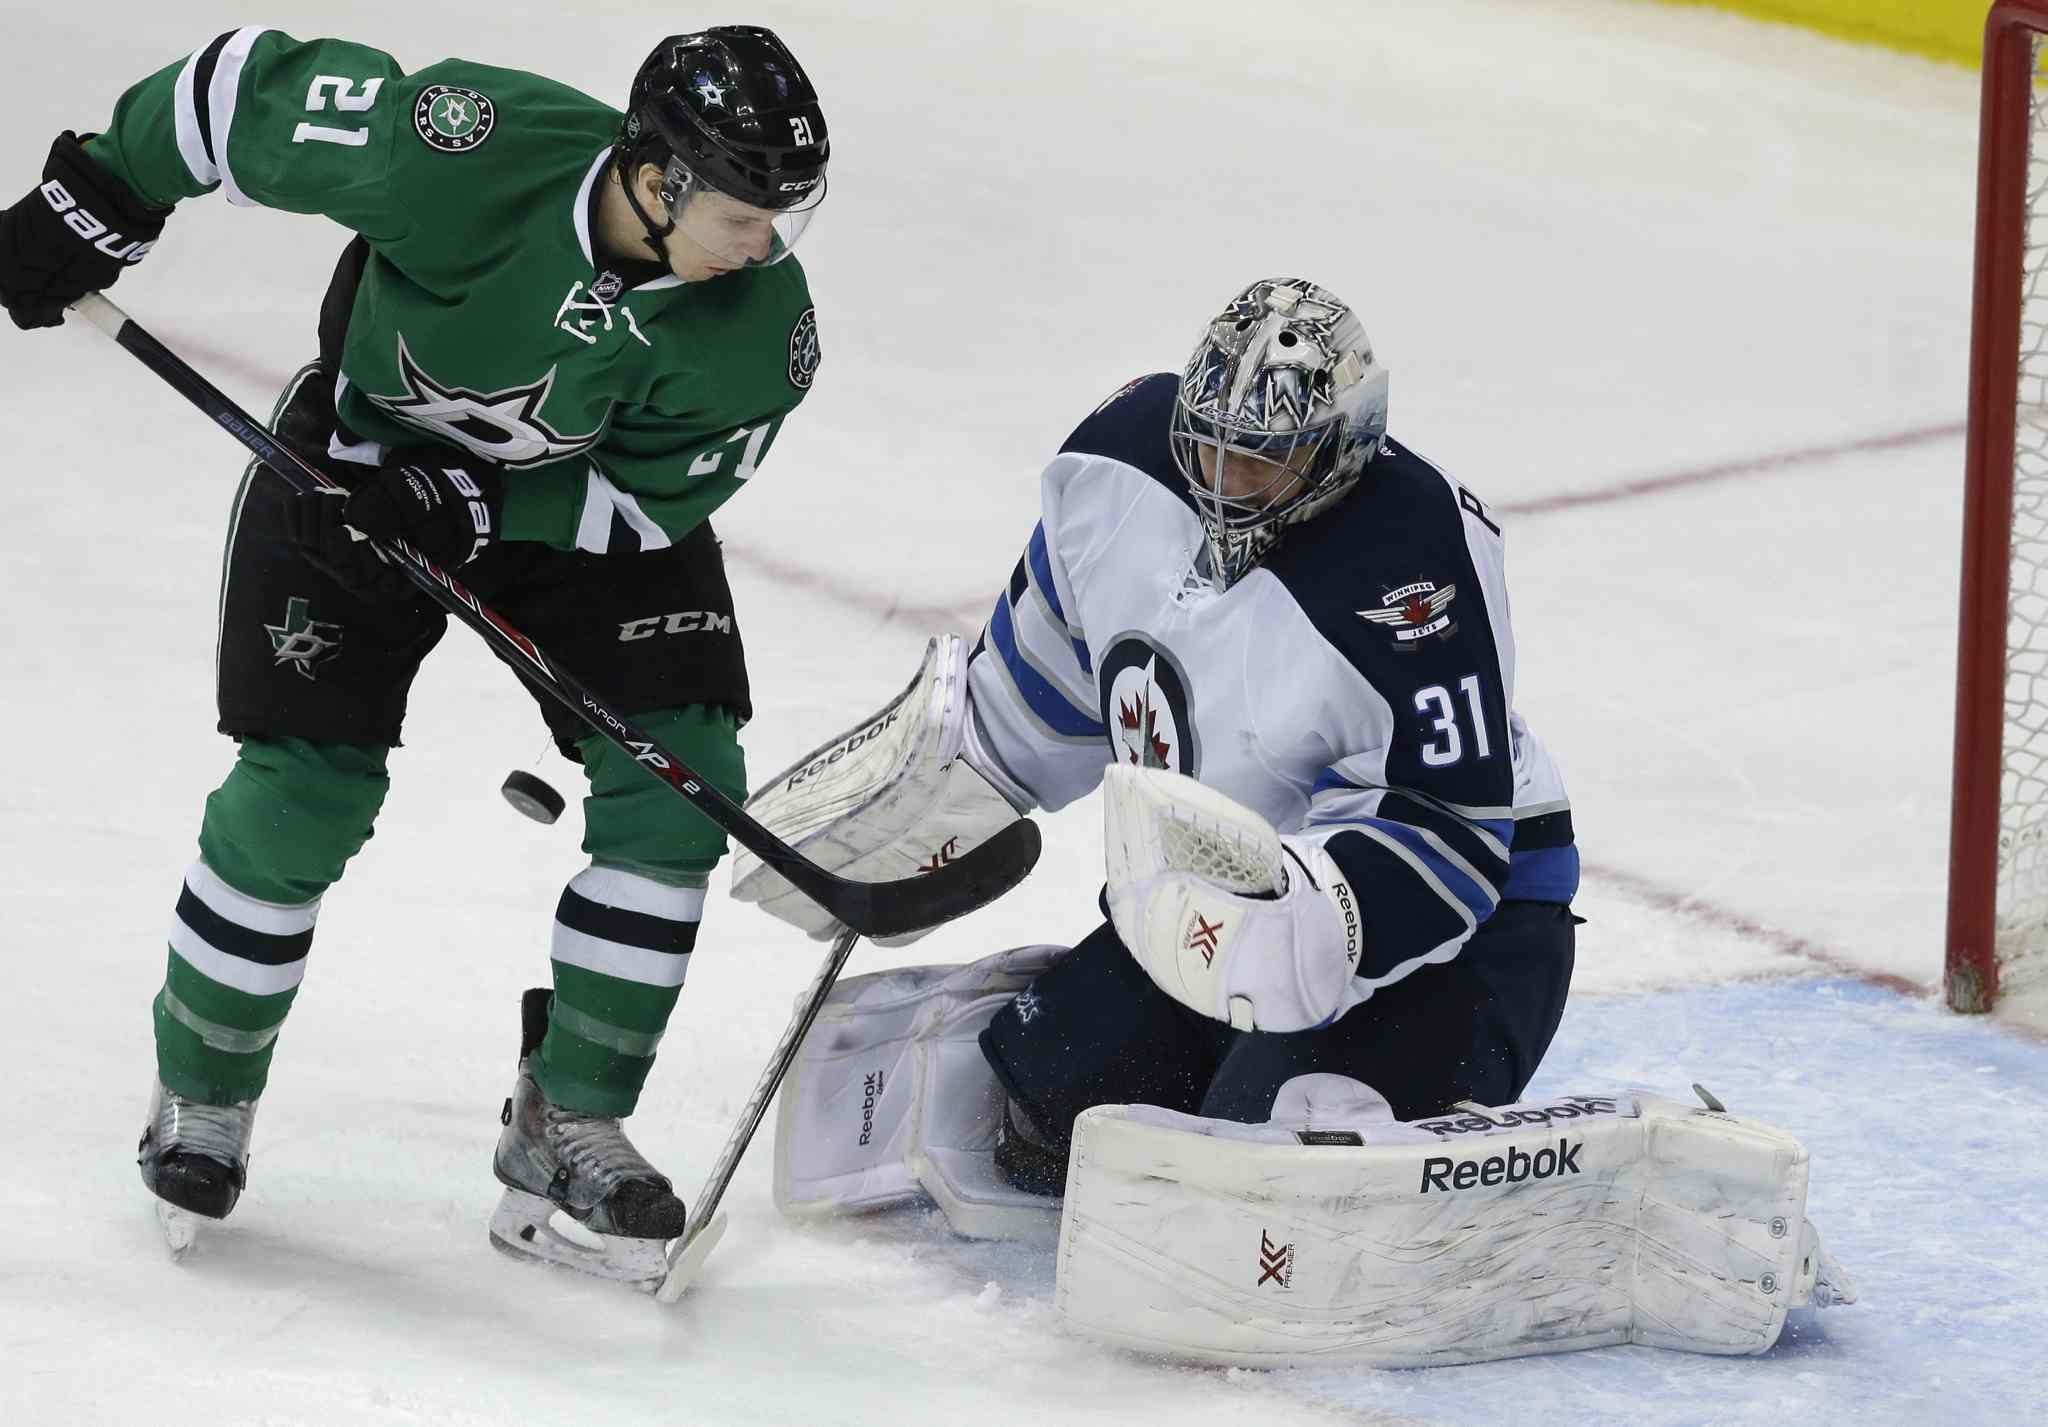 Dallas Stars left wing Antoine Roussel (21) tries to get the puck past Winnipeg Jets goalie Ondrej Pavelec (31) during second period.